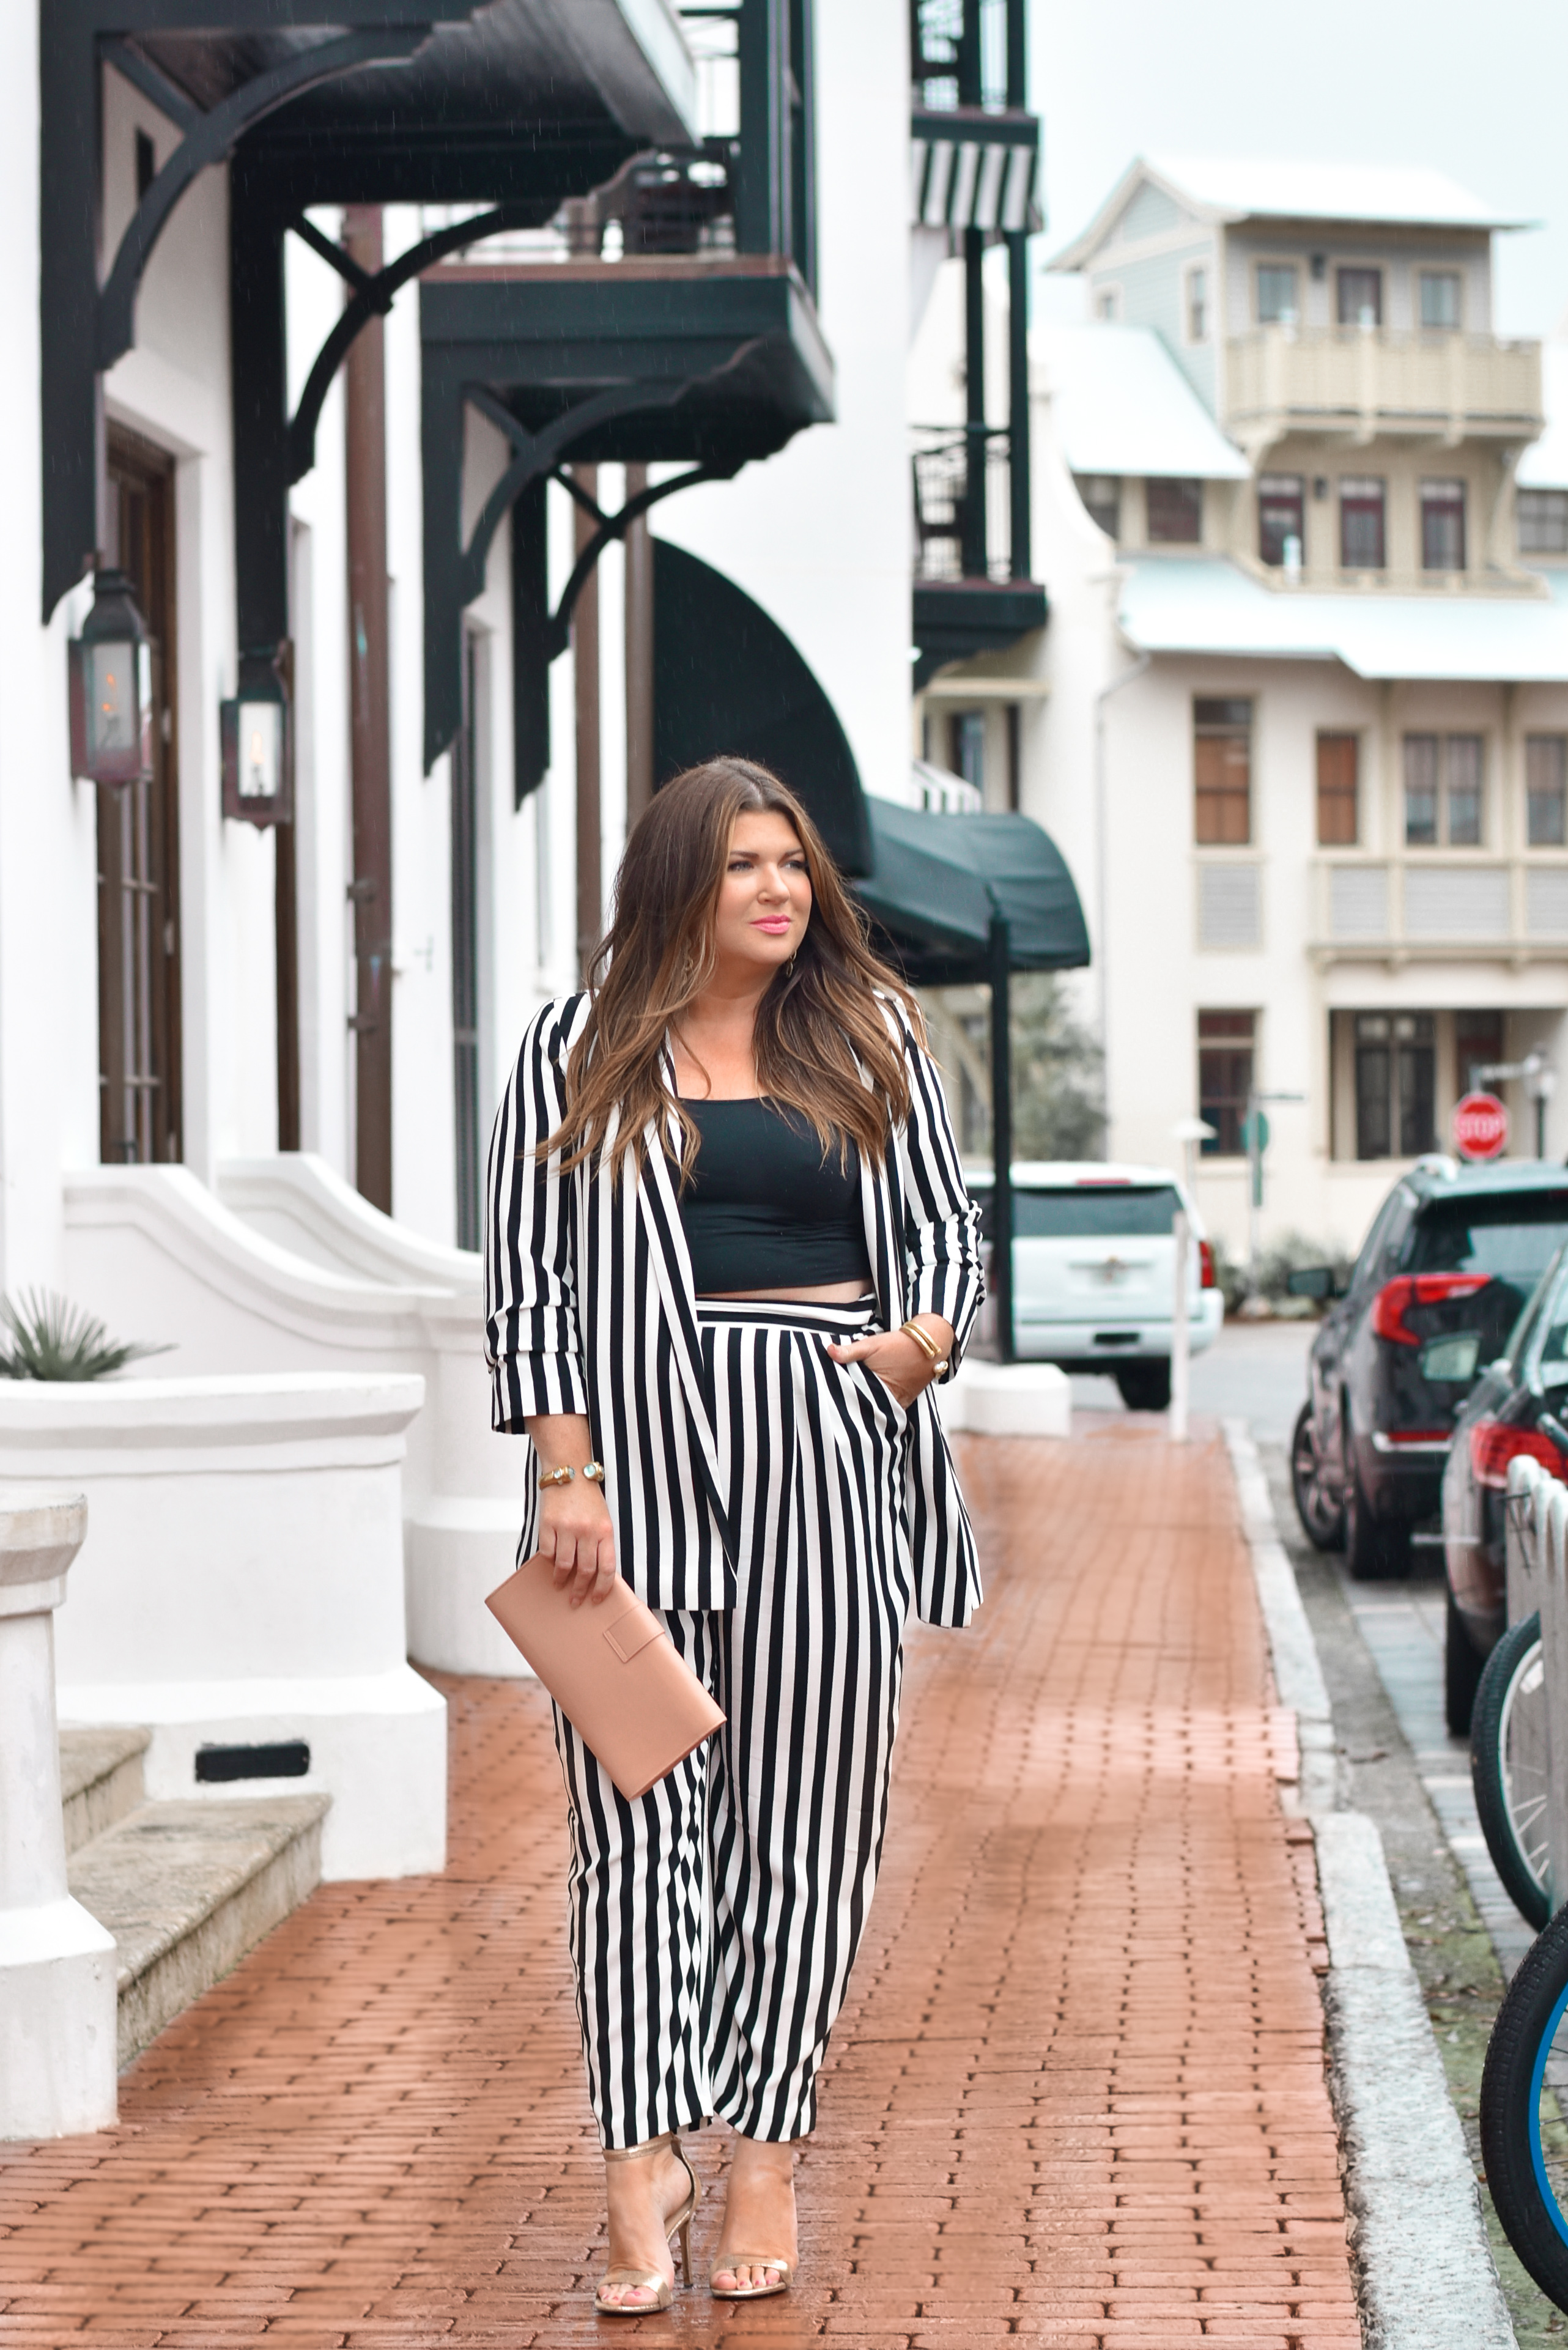 30A Style - Jami Ray wearing a stripe suit in Rosemary Beach